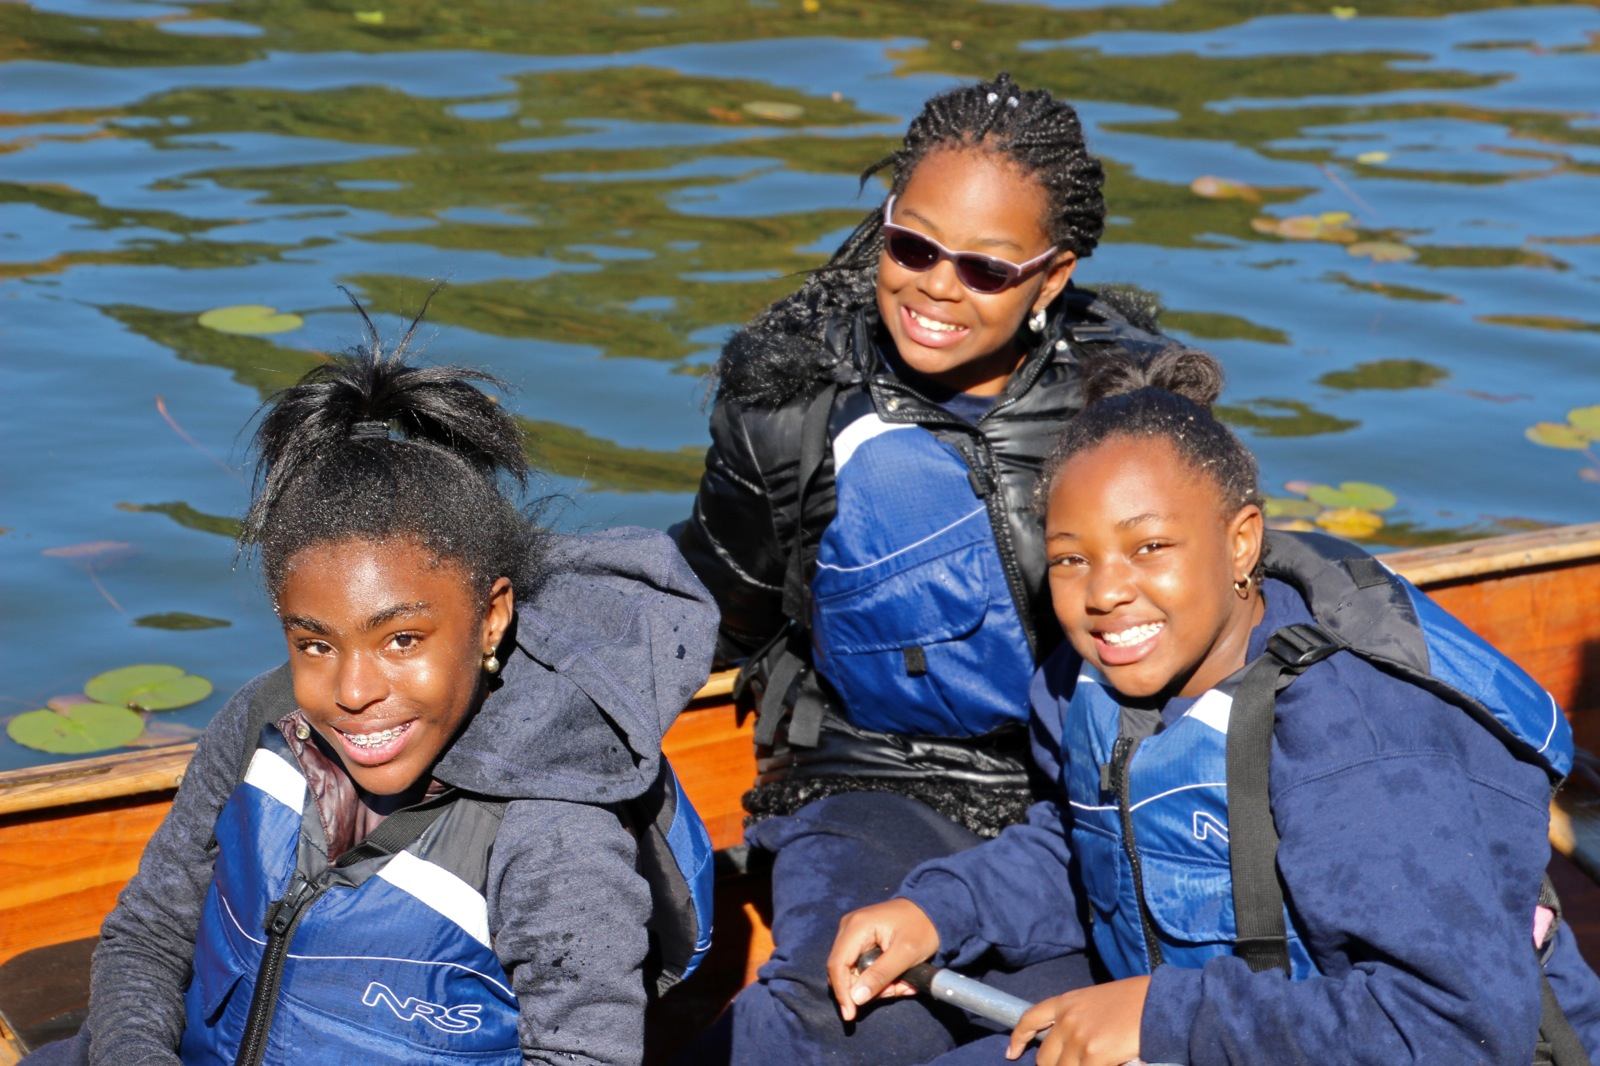 three participants smile for the camera while in the canoe on the Harlem River